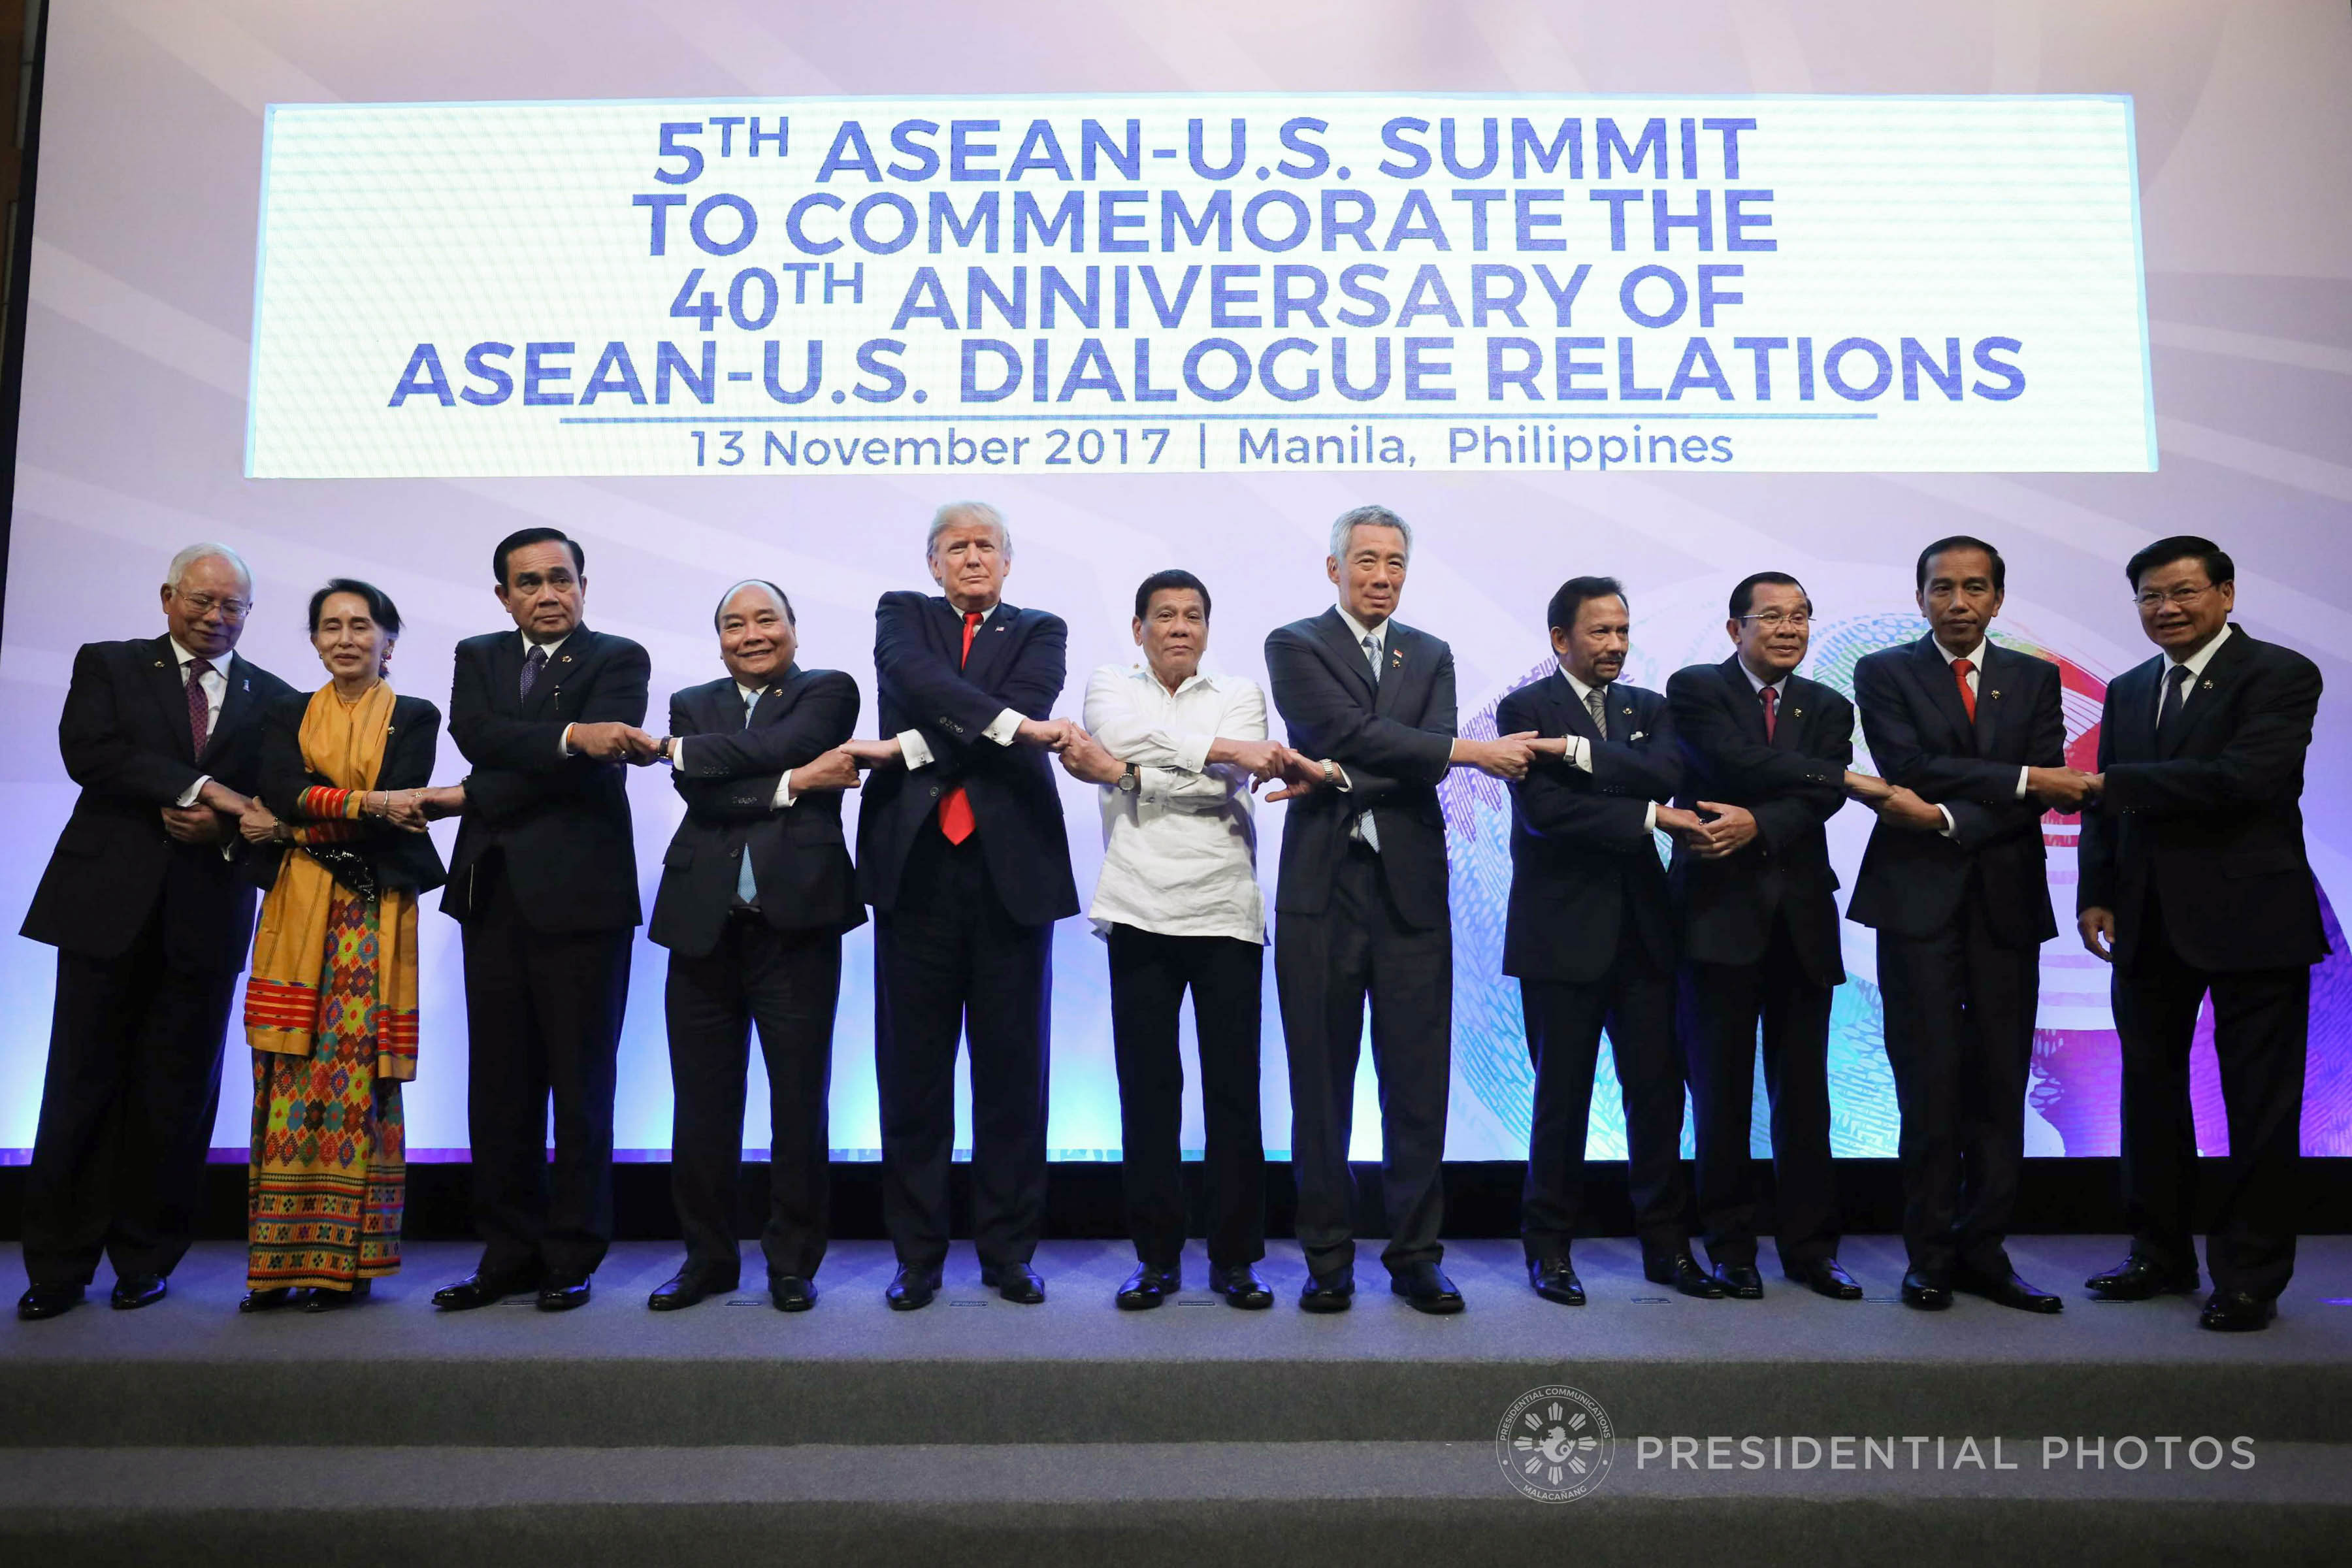 President Rodrigo Roa Duterte, the leaders of the Association of Southeast Asian Nations (ASEAN) member states, and US President Donald Trump do the traditional ASEAN handshake as they pose for a photo prior to the start of 5th ASEAN-US Commemorative Summit at the Philippine International Convention Center in Pasay City on November 13, 2017. (Photo by Ace Morandante/Presidential Photo)